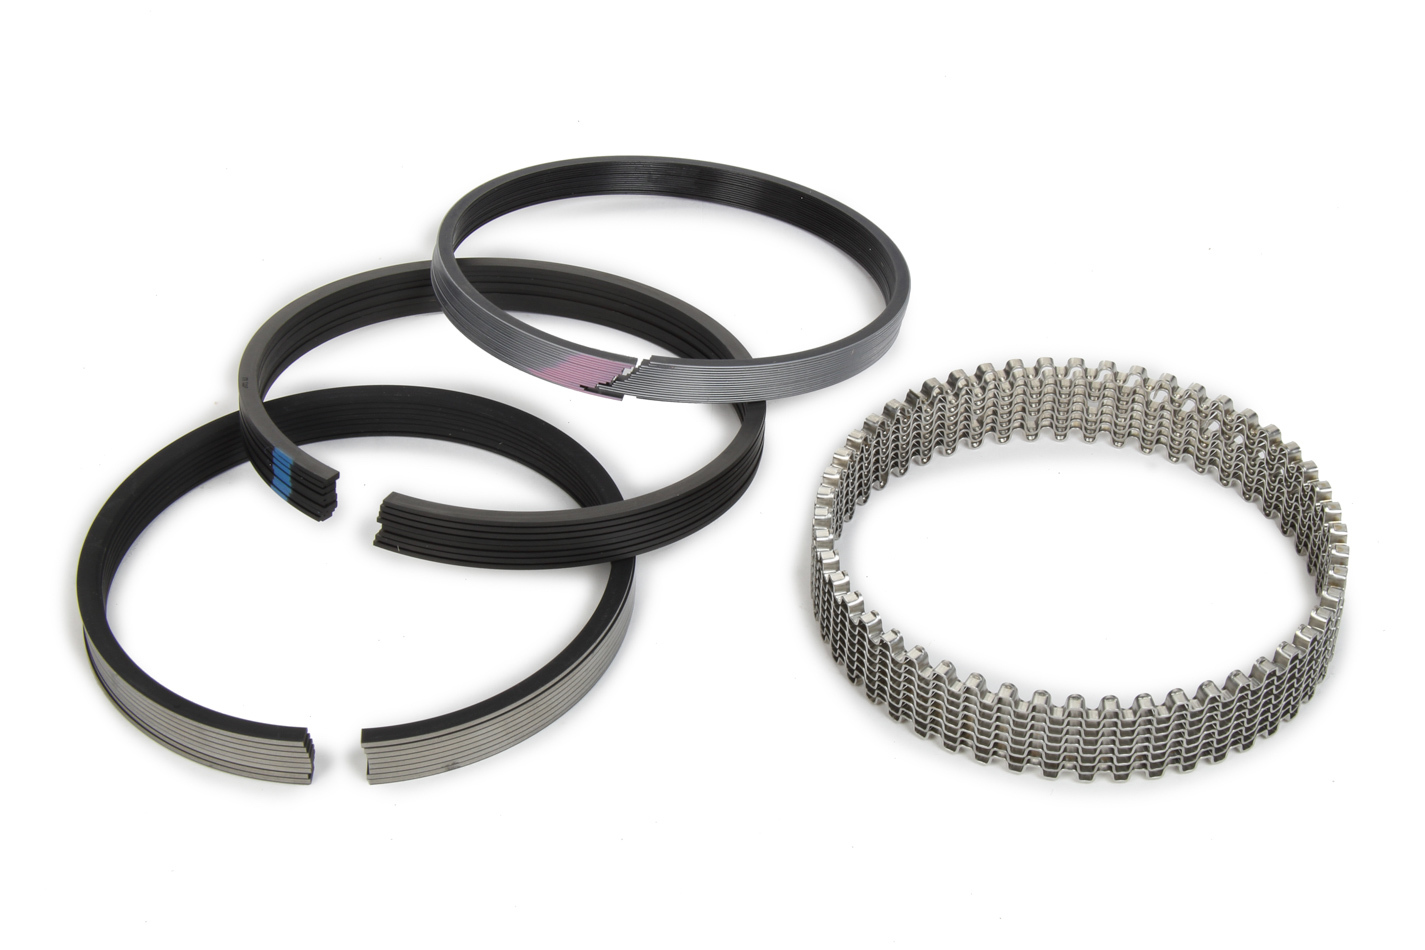 Michigan 77 315-0053.035 Piston Rings, 4.530 in Bore, File Fit, 1/16 x 1/16 x 3/16 in Thick, Standard Tension, Plasma Moly, 8 Cylinder, Kit